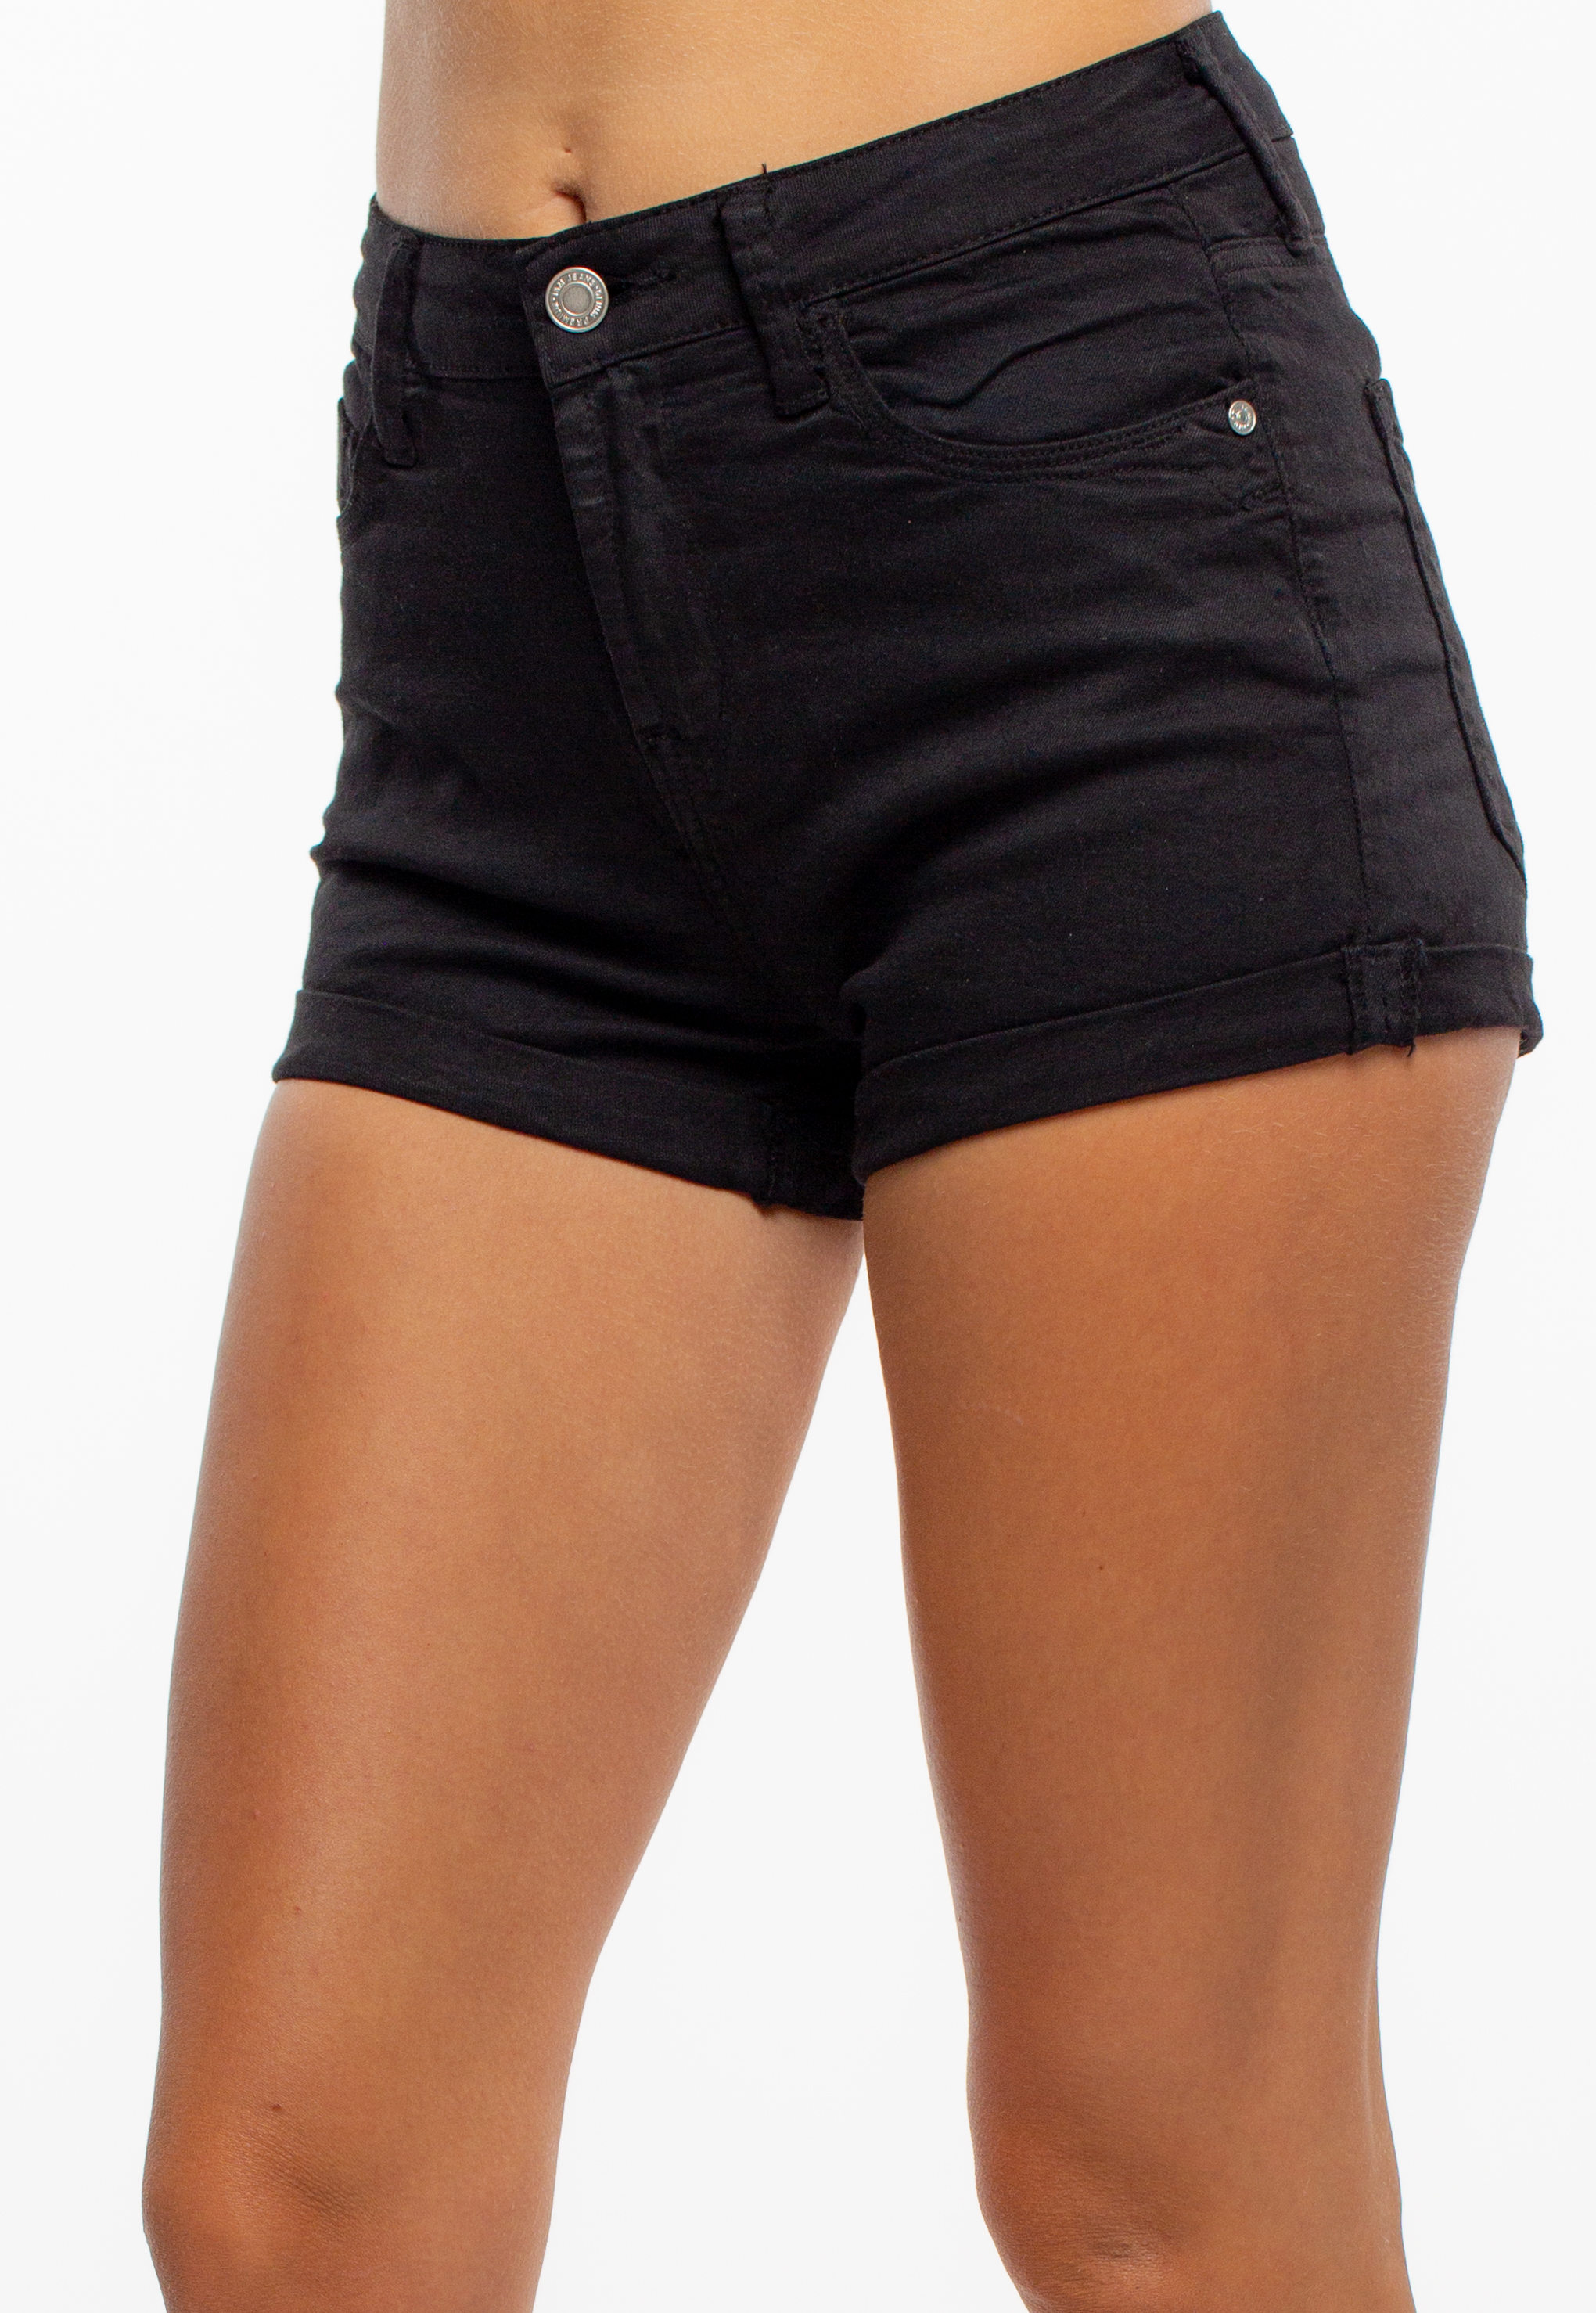 Mid-Rise Color Shorts